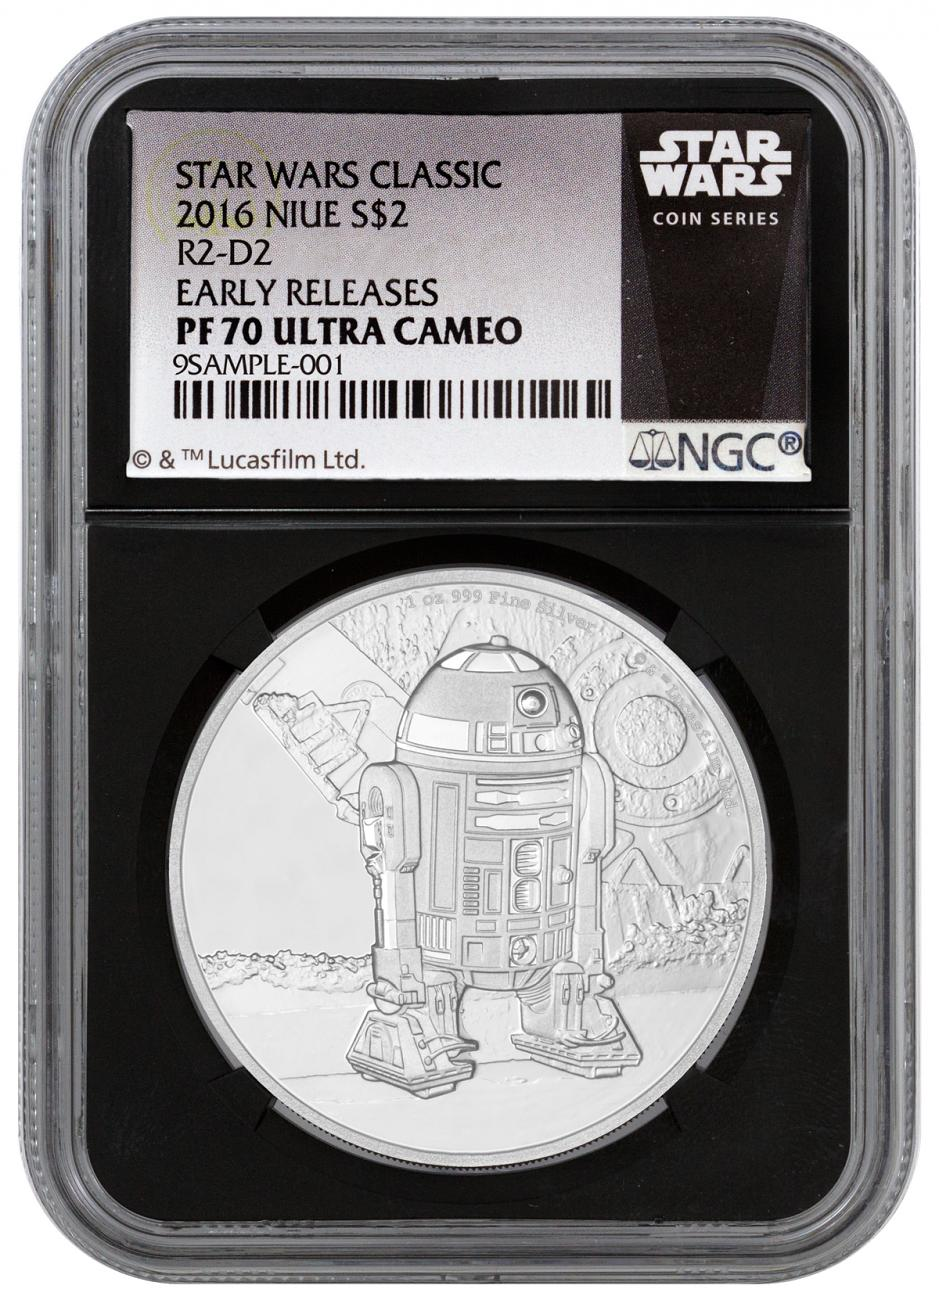 2016 Niue Star Wars Classic R2 D2 1 Oz Silver Proof 2